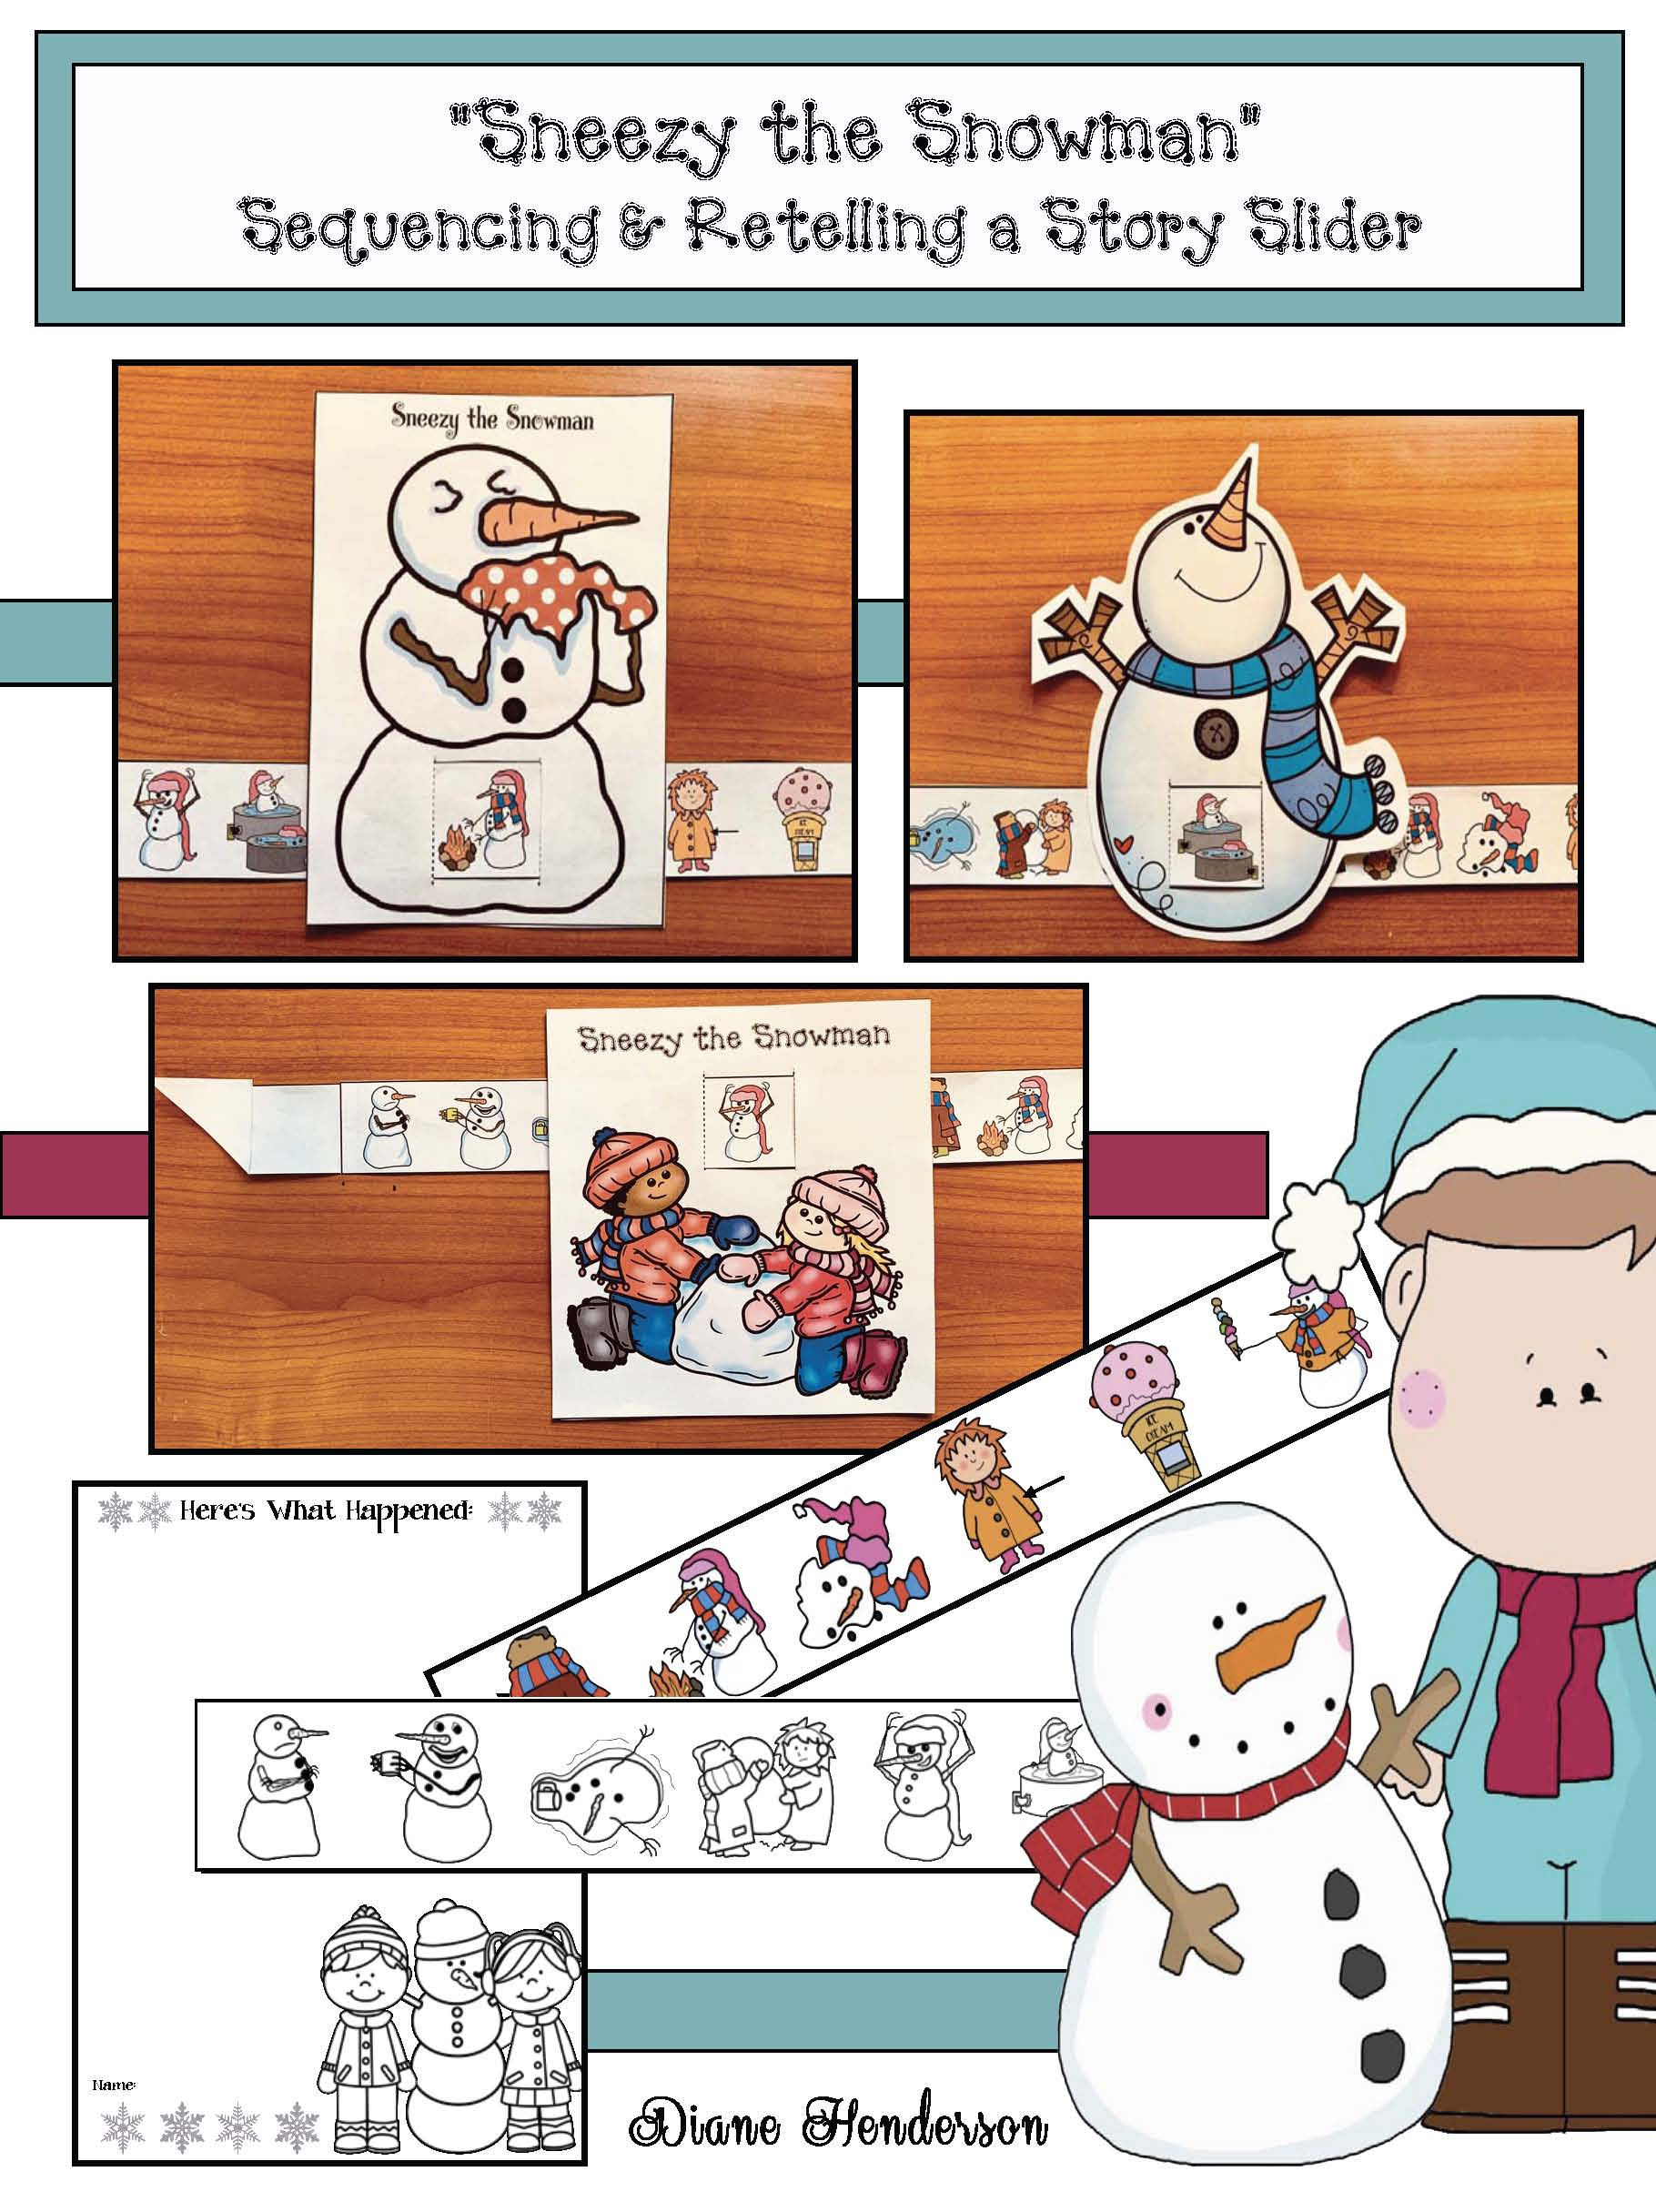 sneezy the snowman, activities for sneezy the snowman, snowman crafts, retelling a story activities, sequencing a story activities